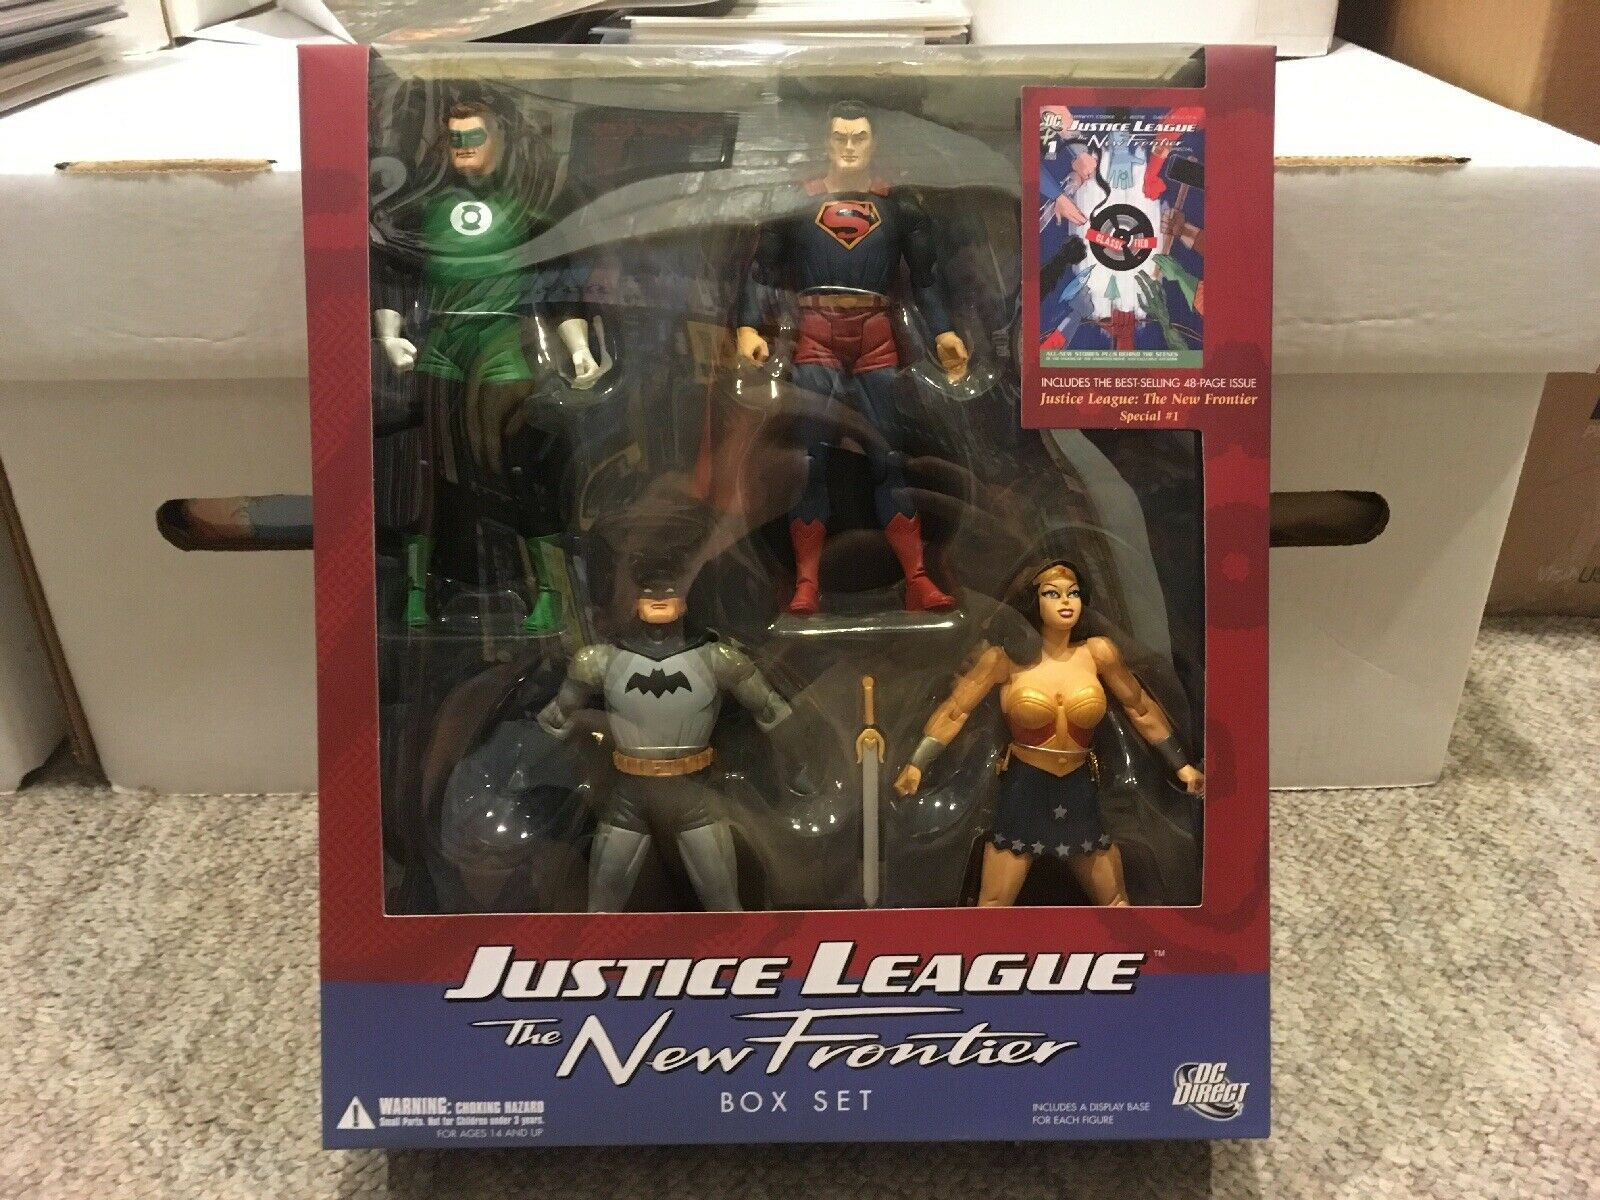 Justice League The nuovo davantiier scatola Set cifra  Superuomo Batuomo Wonder donna  compra meglio